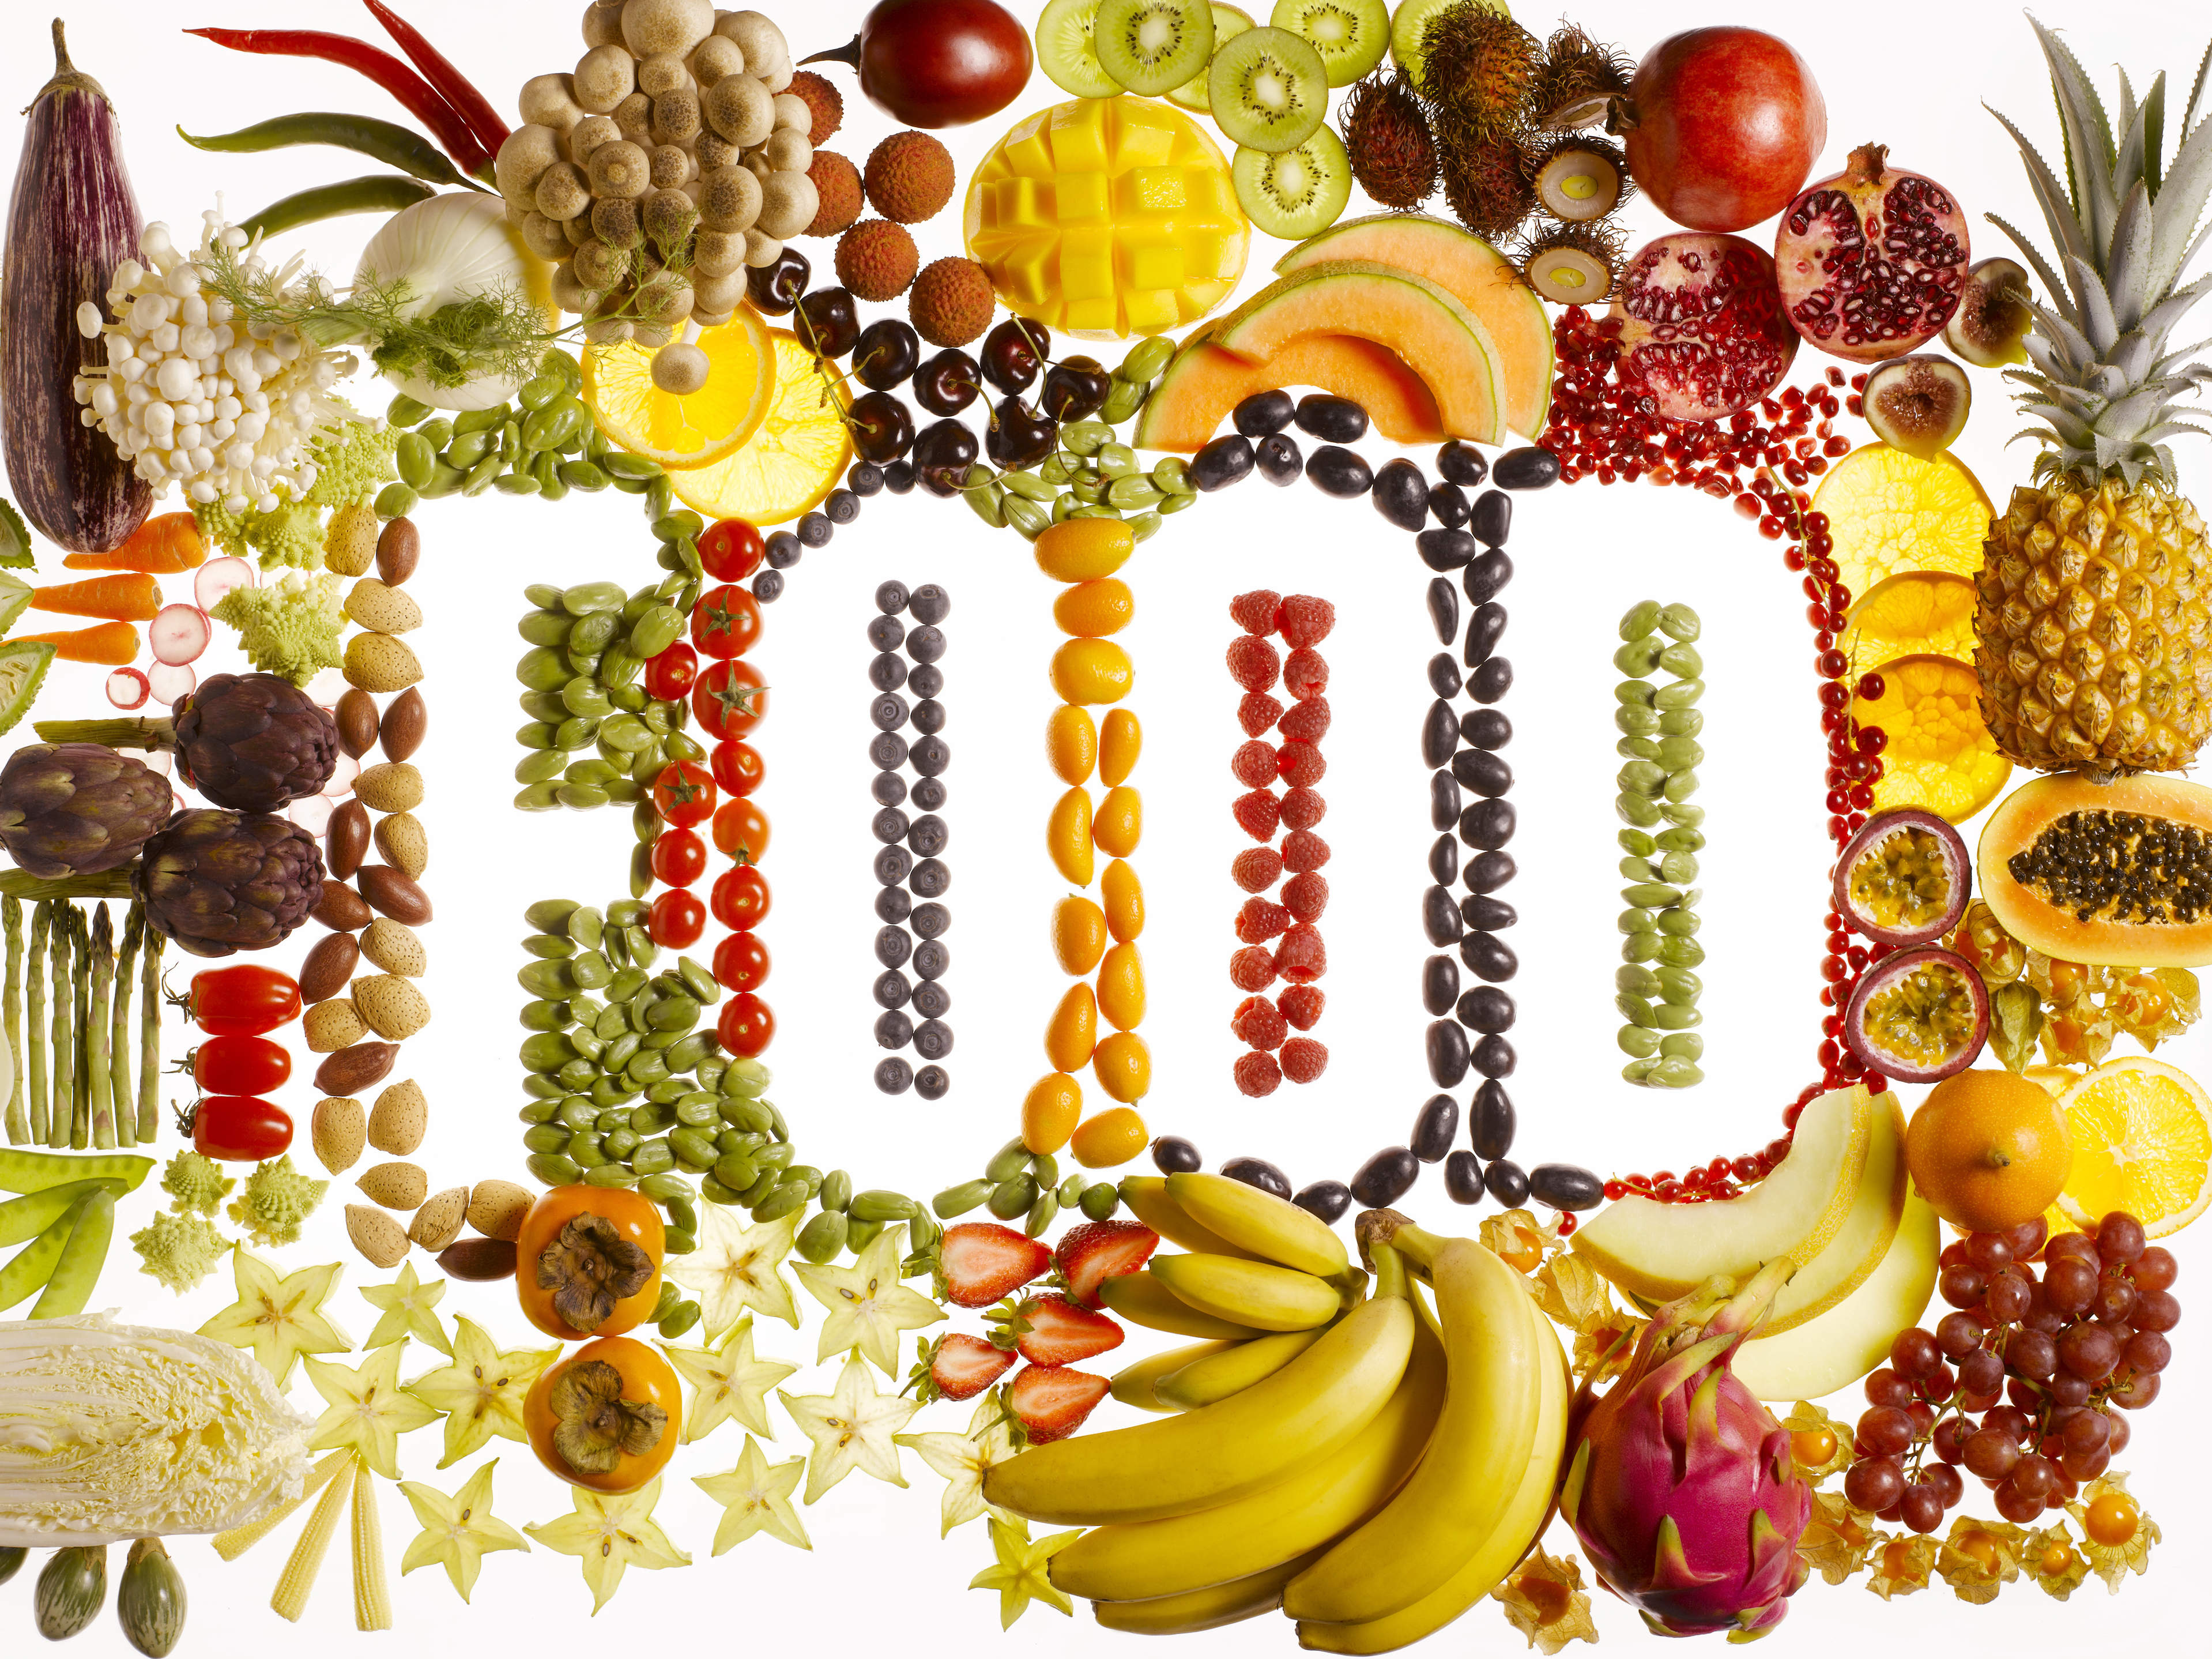 10 Amazing Foods to Boost Your Health